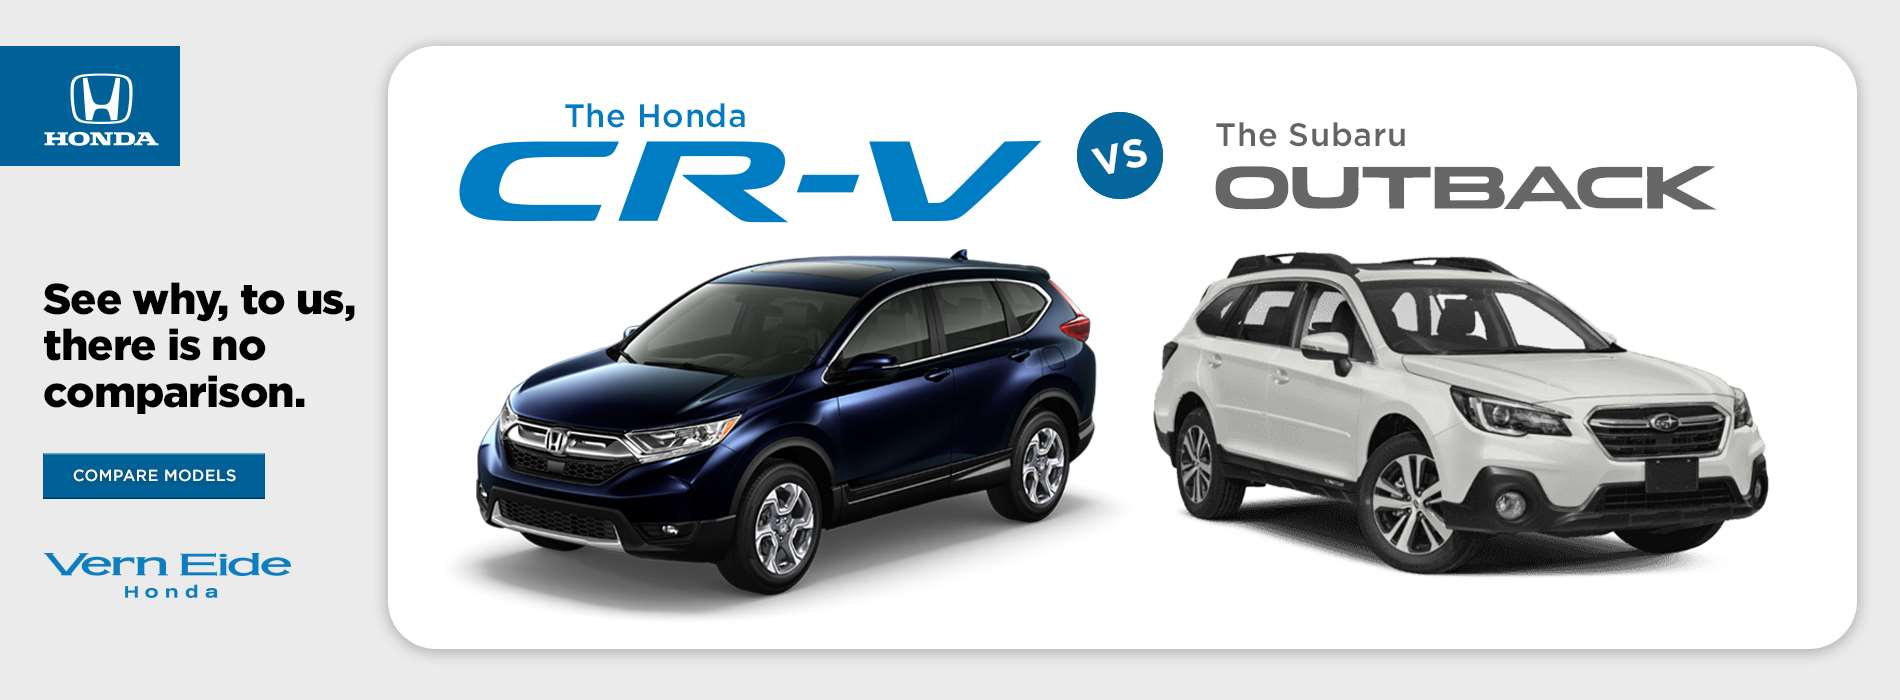 CRV vs Outback